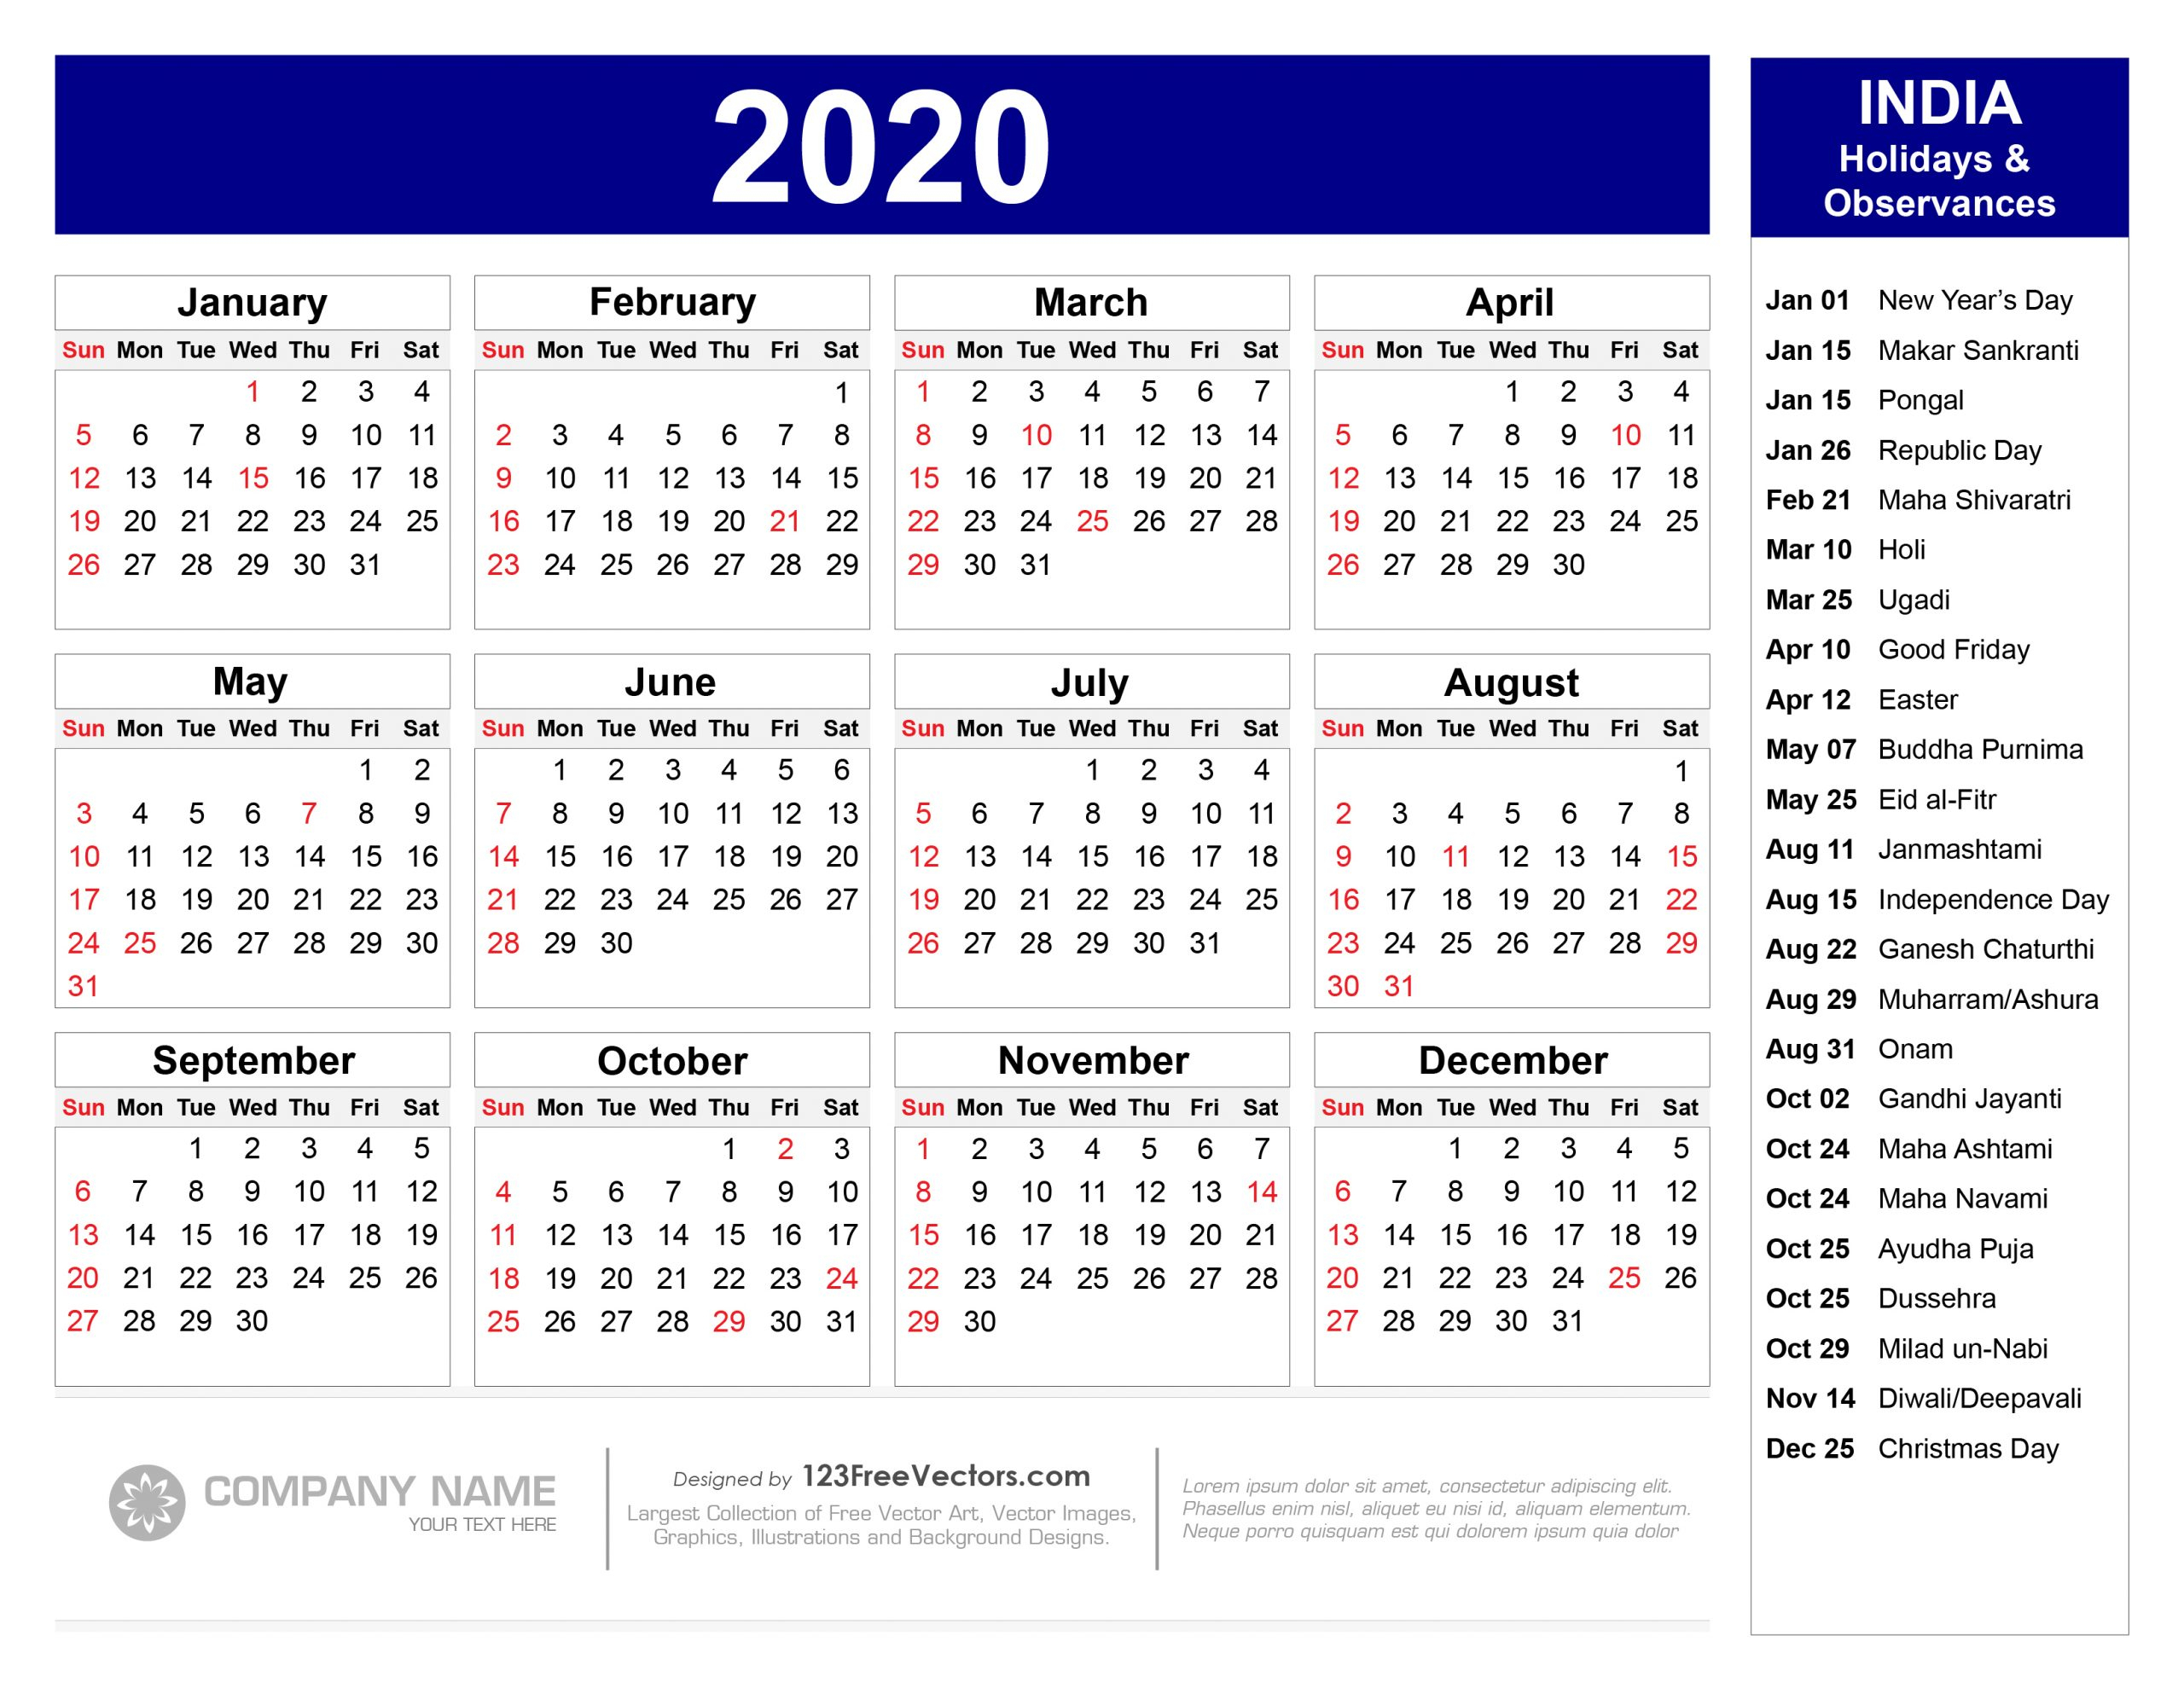 Get Government Calendar 2020 With Holidays | Calendar Printables Free Blank intended for Federal Government Calendar